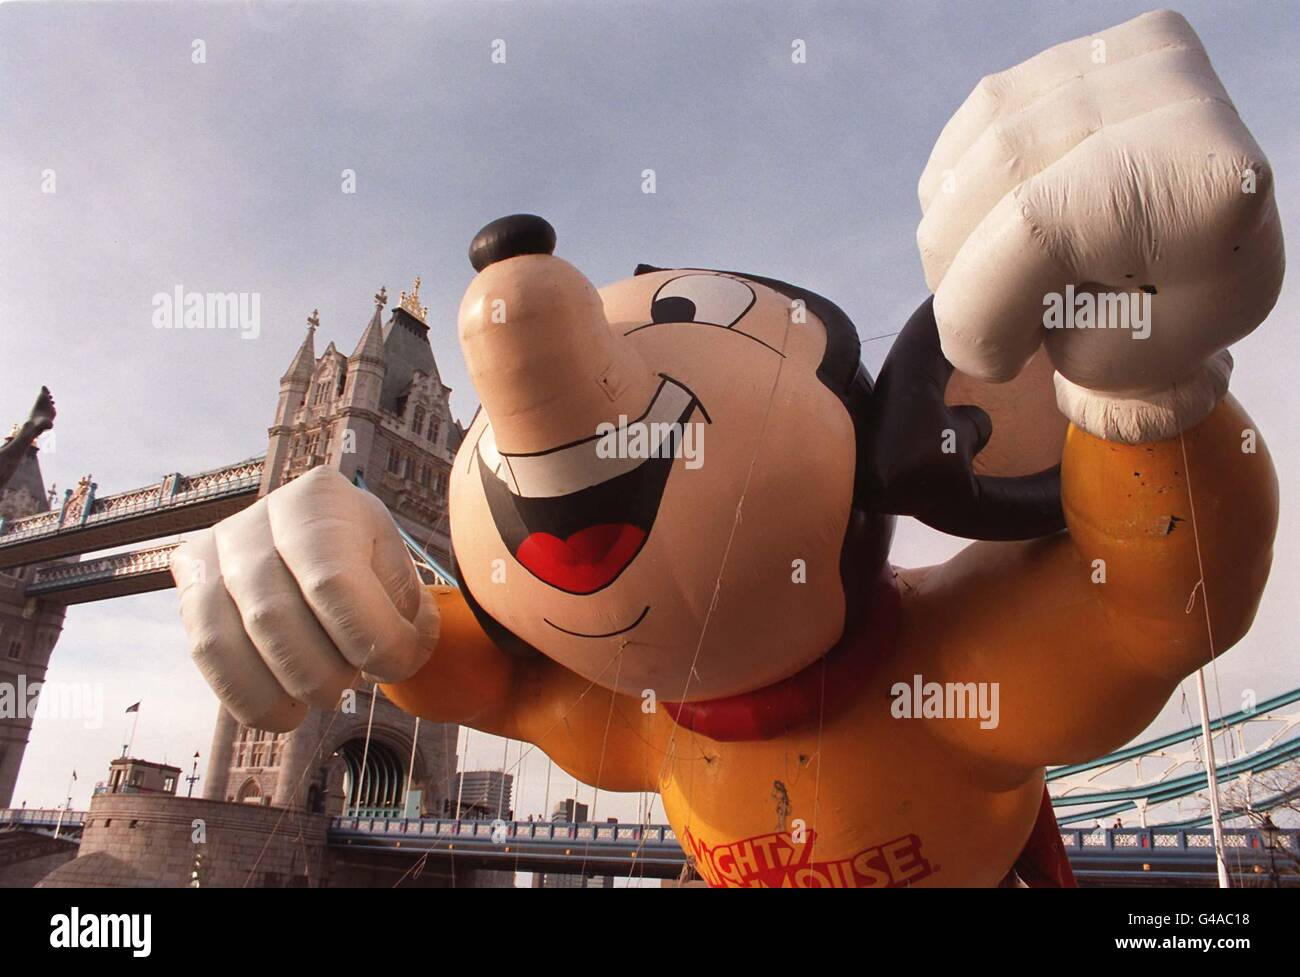 LONDON PARADE Mighty Mouse Inflatable - Stock Image